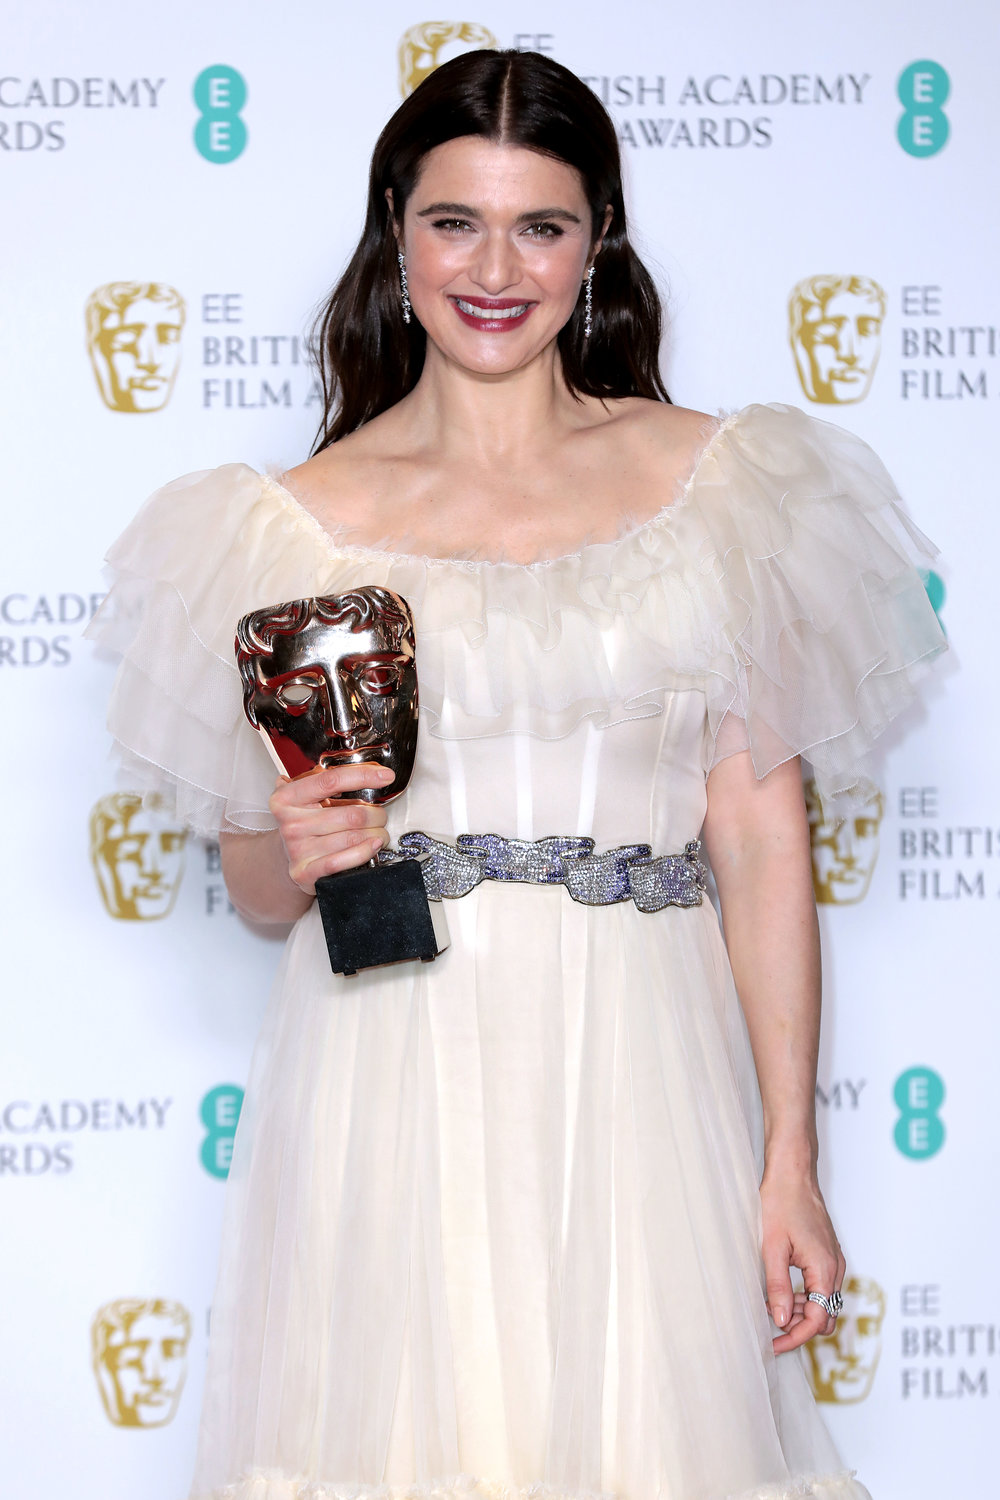 Rachel Weisz - Supporting Actress - 'The Favourite'